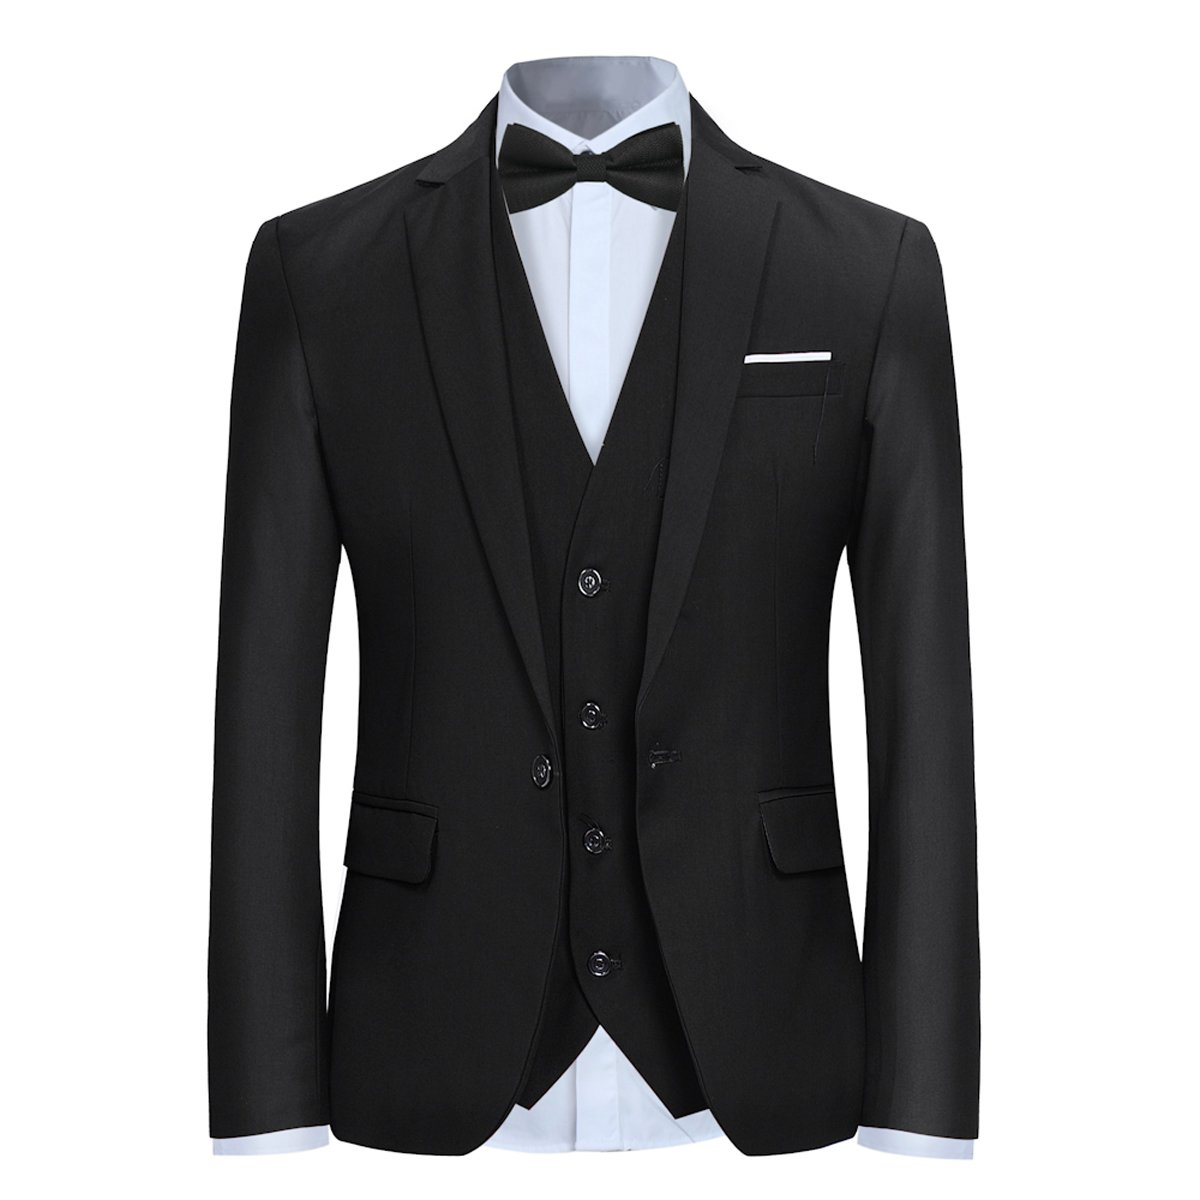 Allthemen 3 Piece Slim Fit Suit Wedding Dress Casual One Button Lounge Suit Black